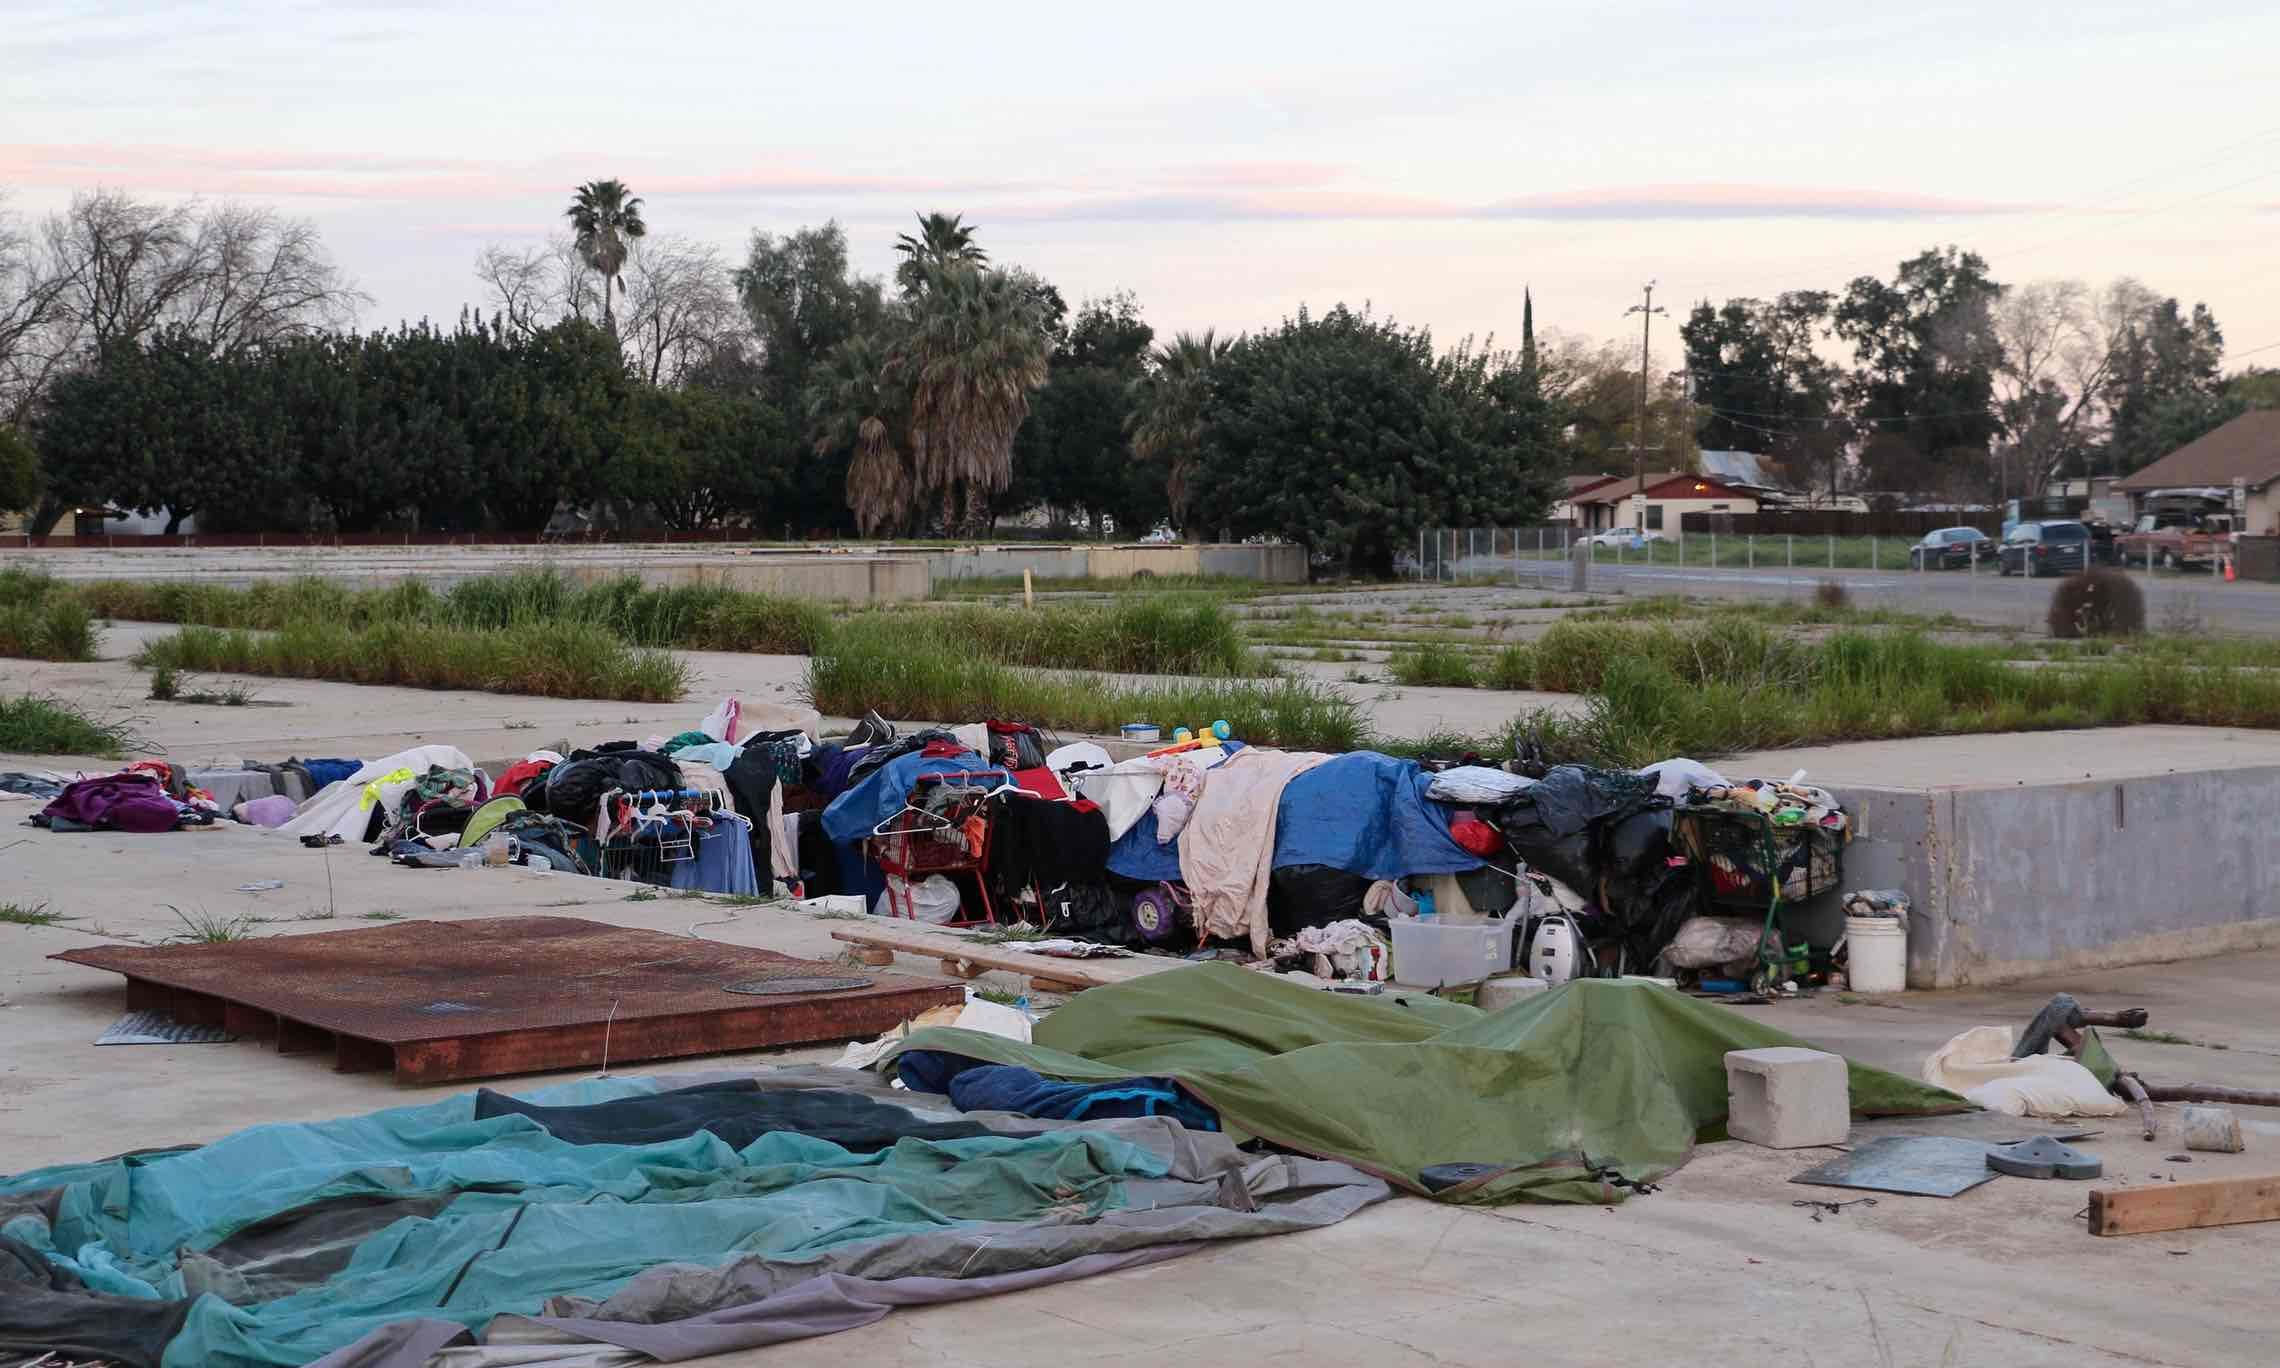 A homeless encampment at the site of the former Pacific